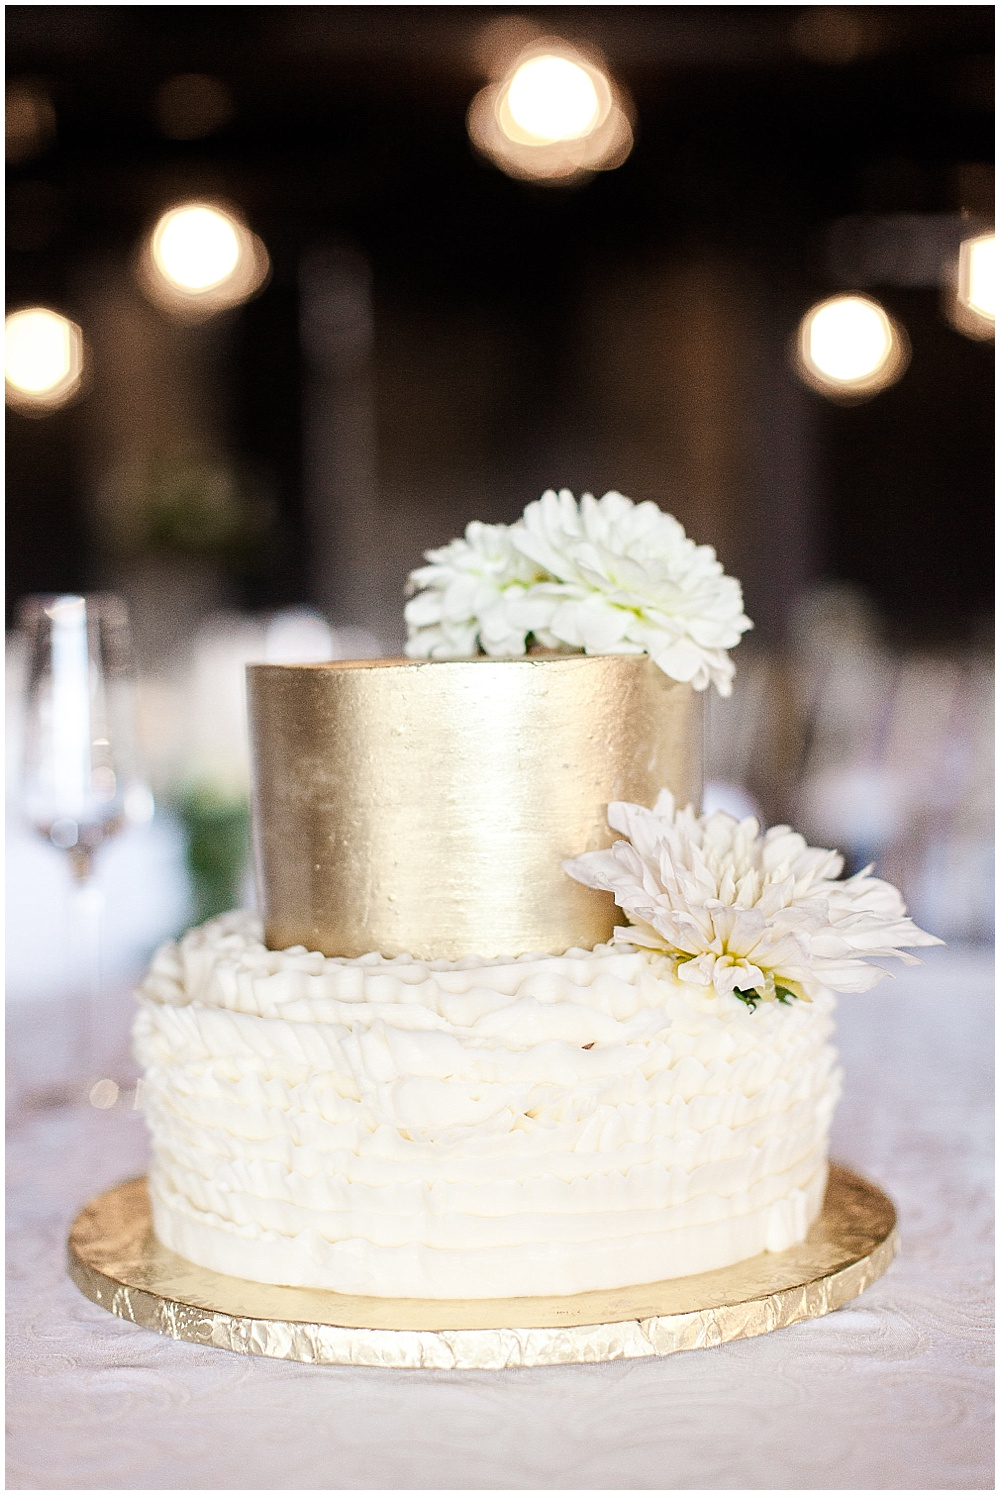 White and gold wedding cake | Canal 337 wedding by Jenny Haas Photography & Jessica Dum Wedding Coordination